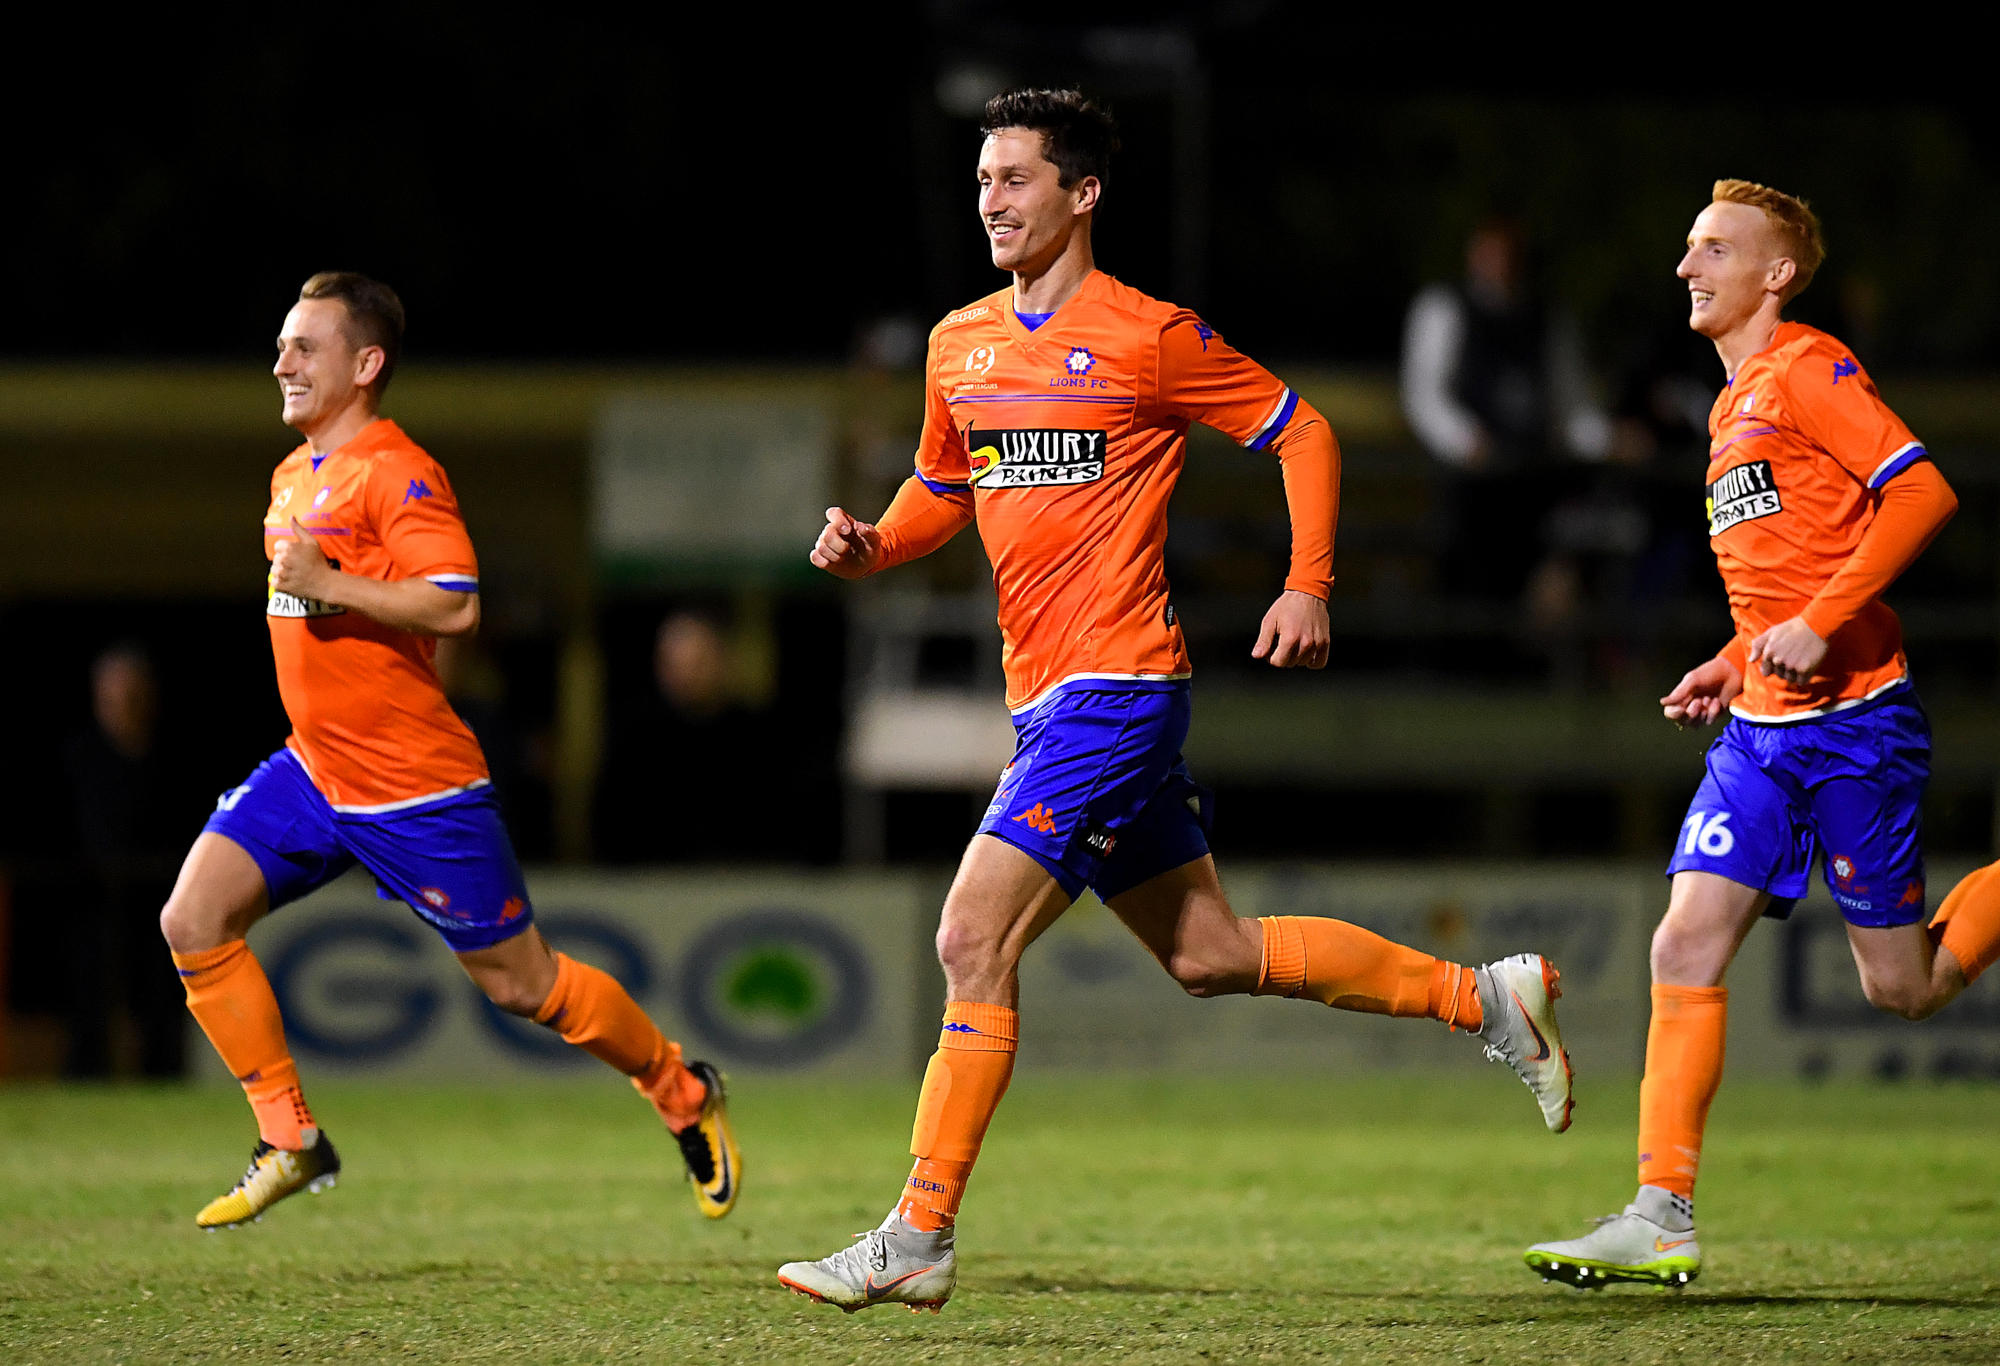 Lions FC players celebrate their victory after a penalty shoot-out against Heidelberg United.